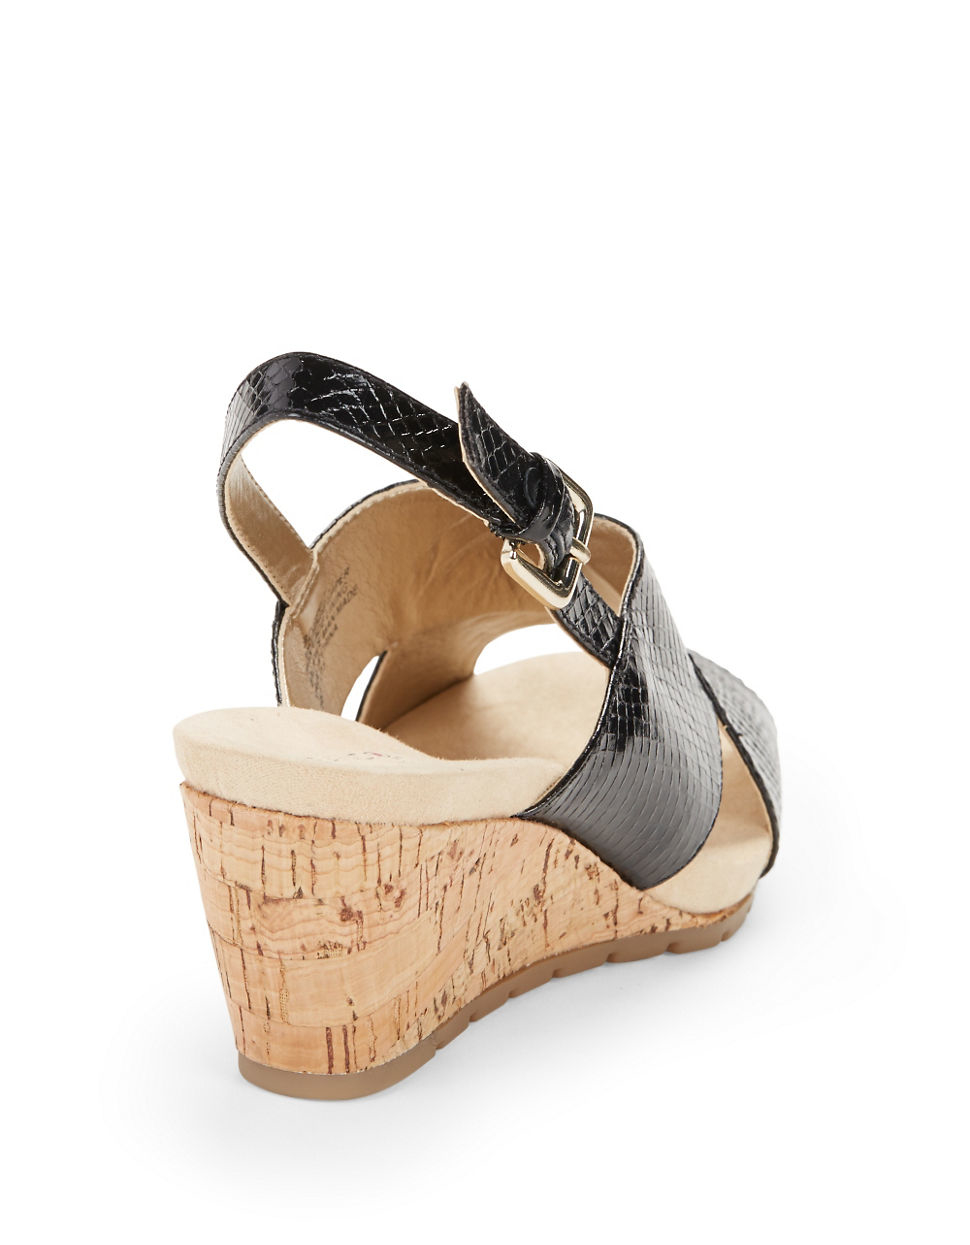 Bandolino Gerie Slingback Wedge Sandals In Black Lyst